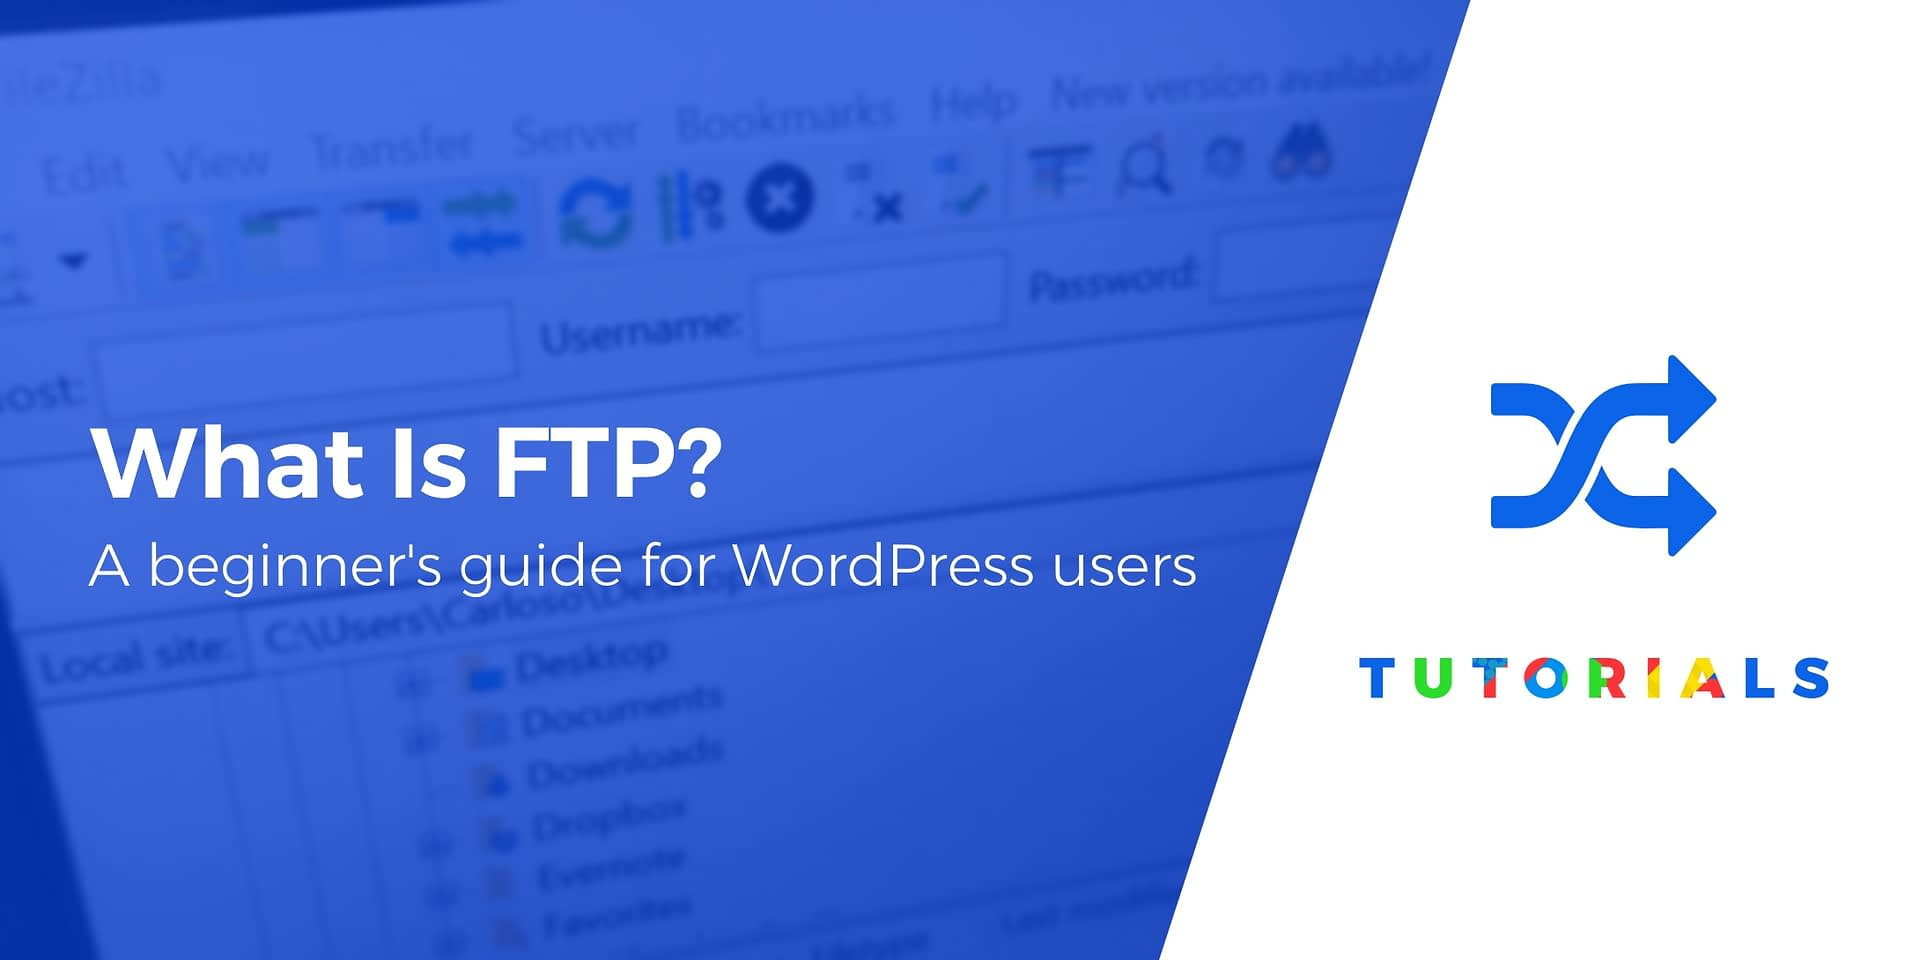 What Is FTP: A Beginner's Guide to FTP for WordPress Users